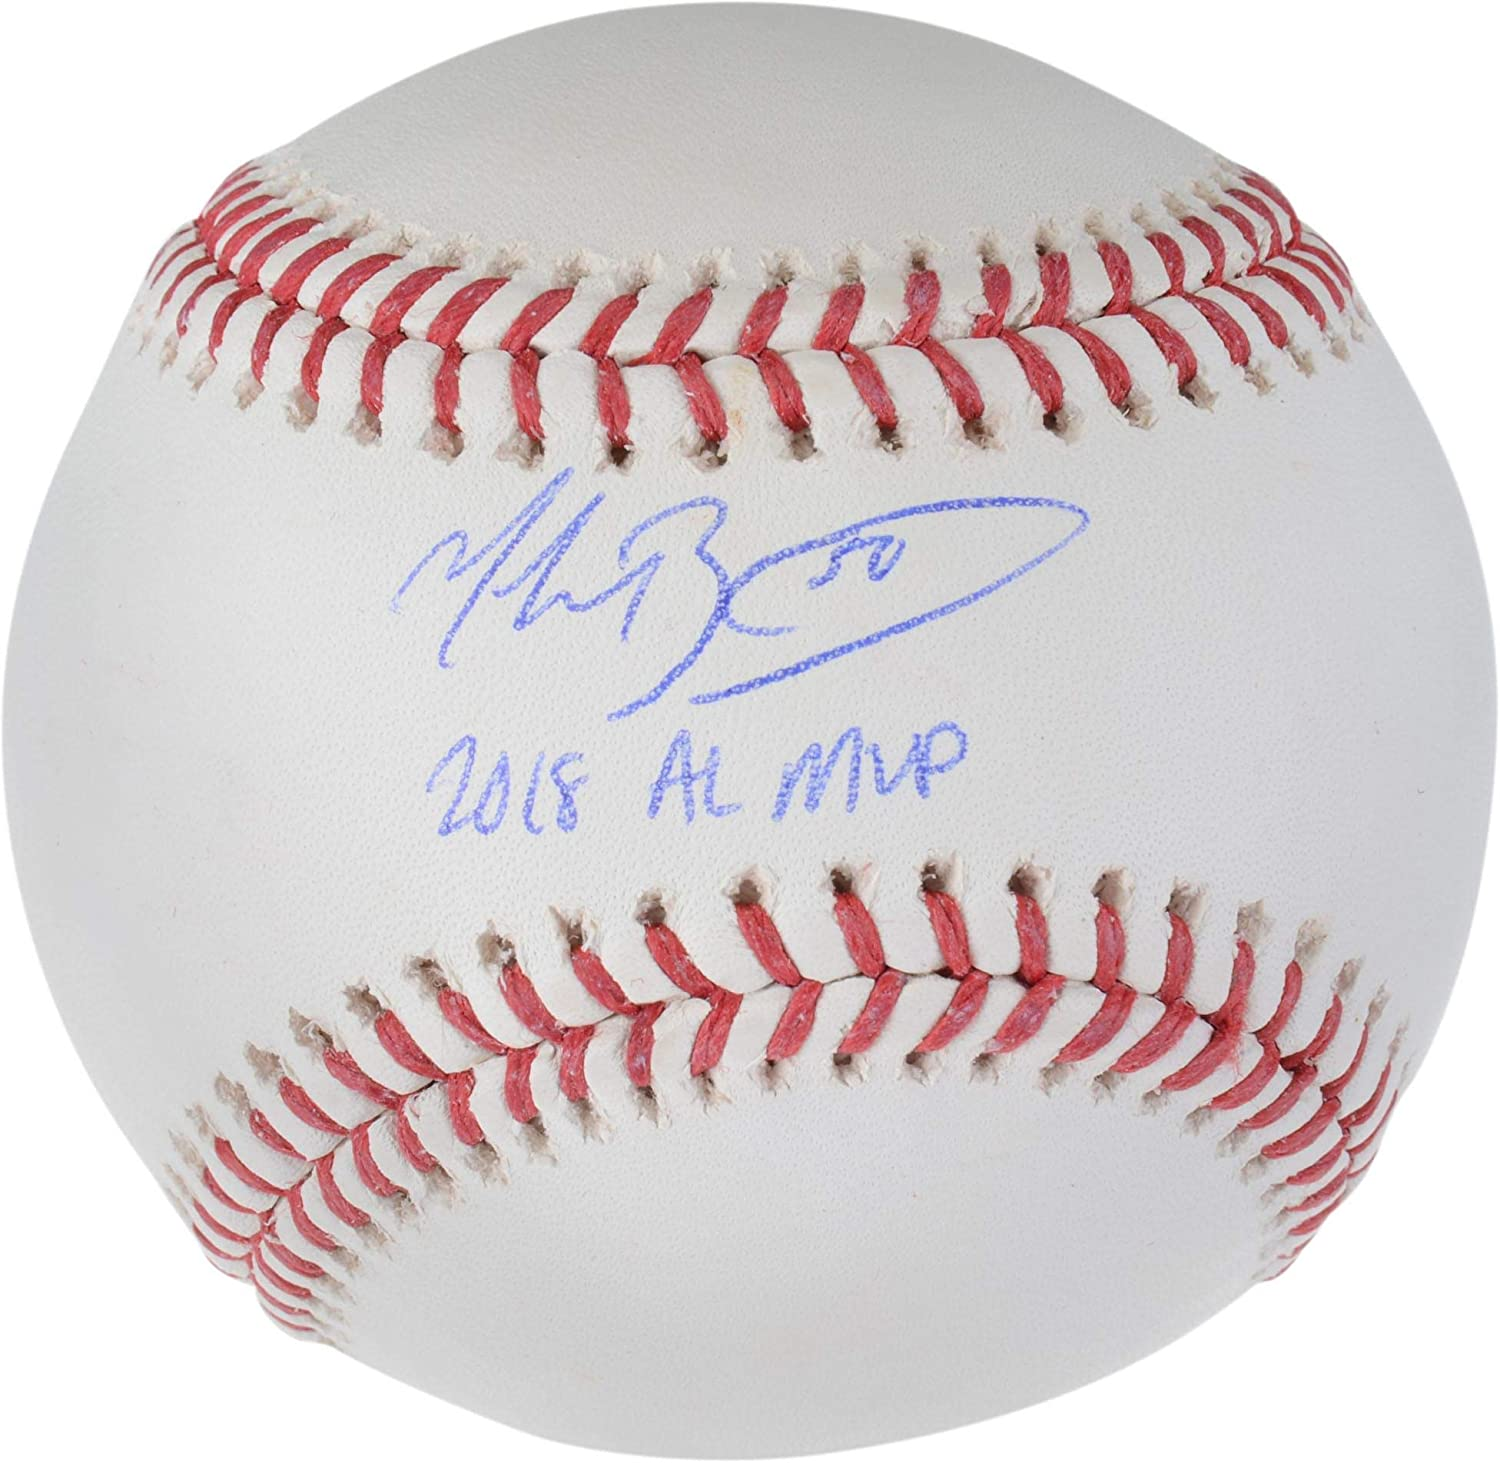 Fanatics Authentic Certified Mookie Betts Boston Red Sox Autographed Baseball with2018 AL MVP Inscription